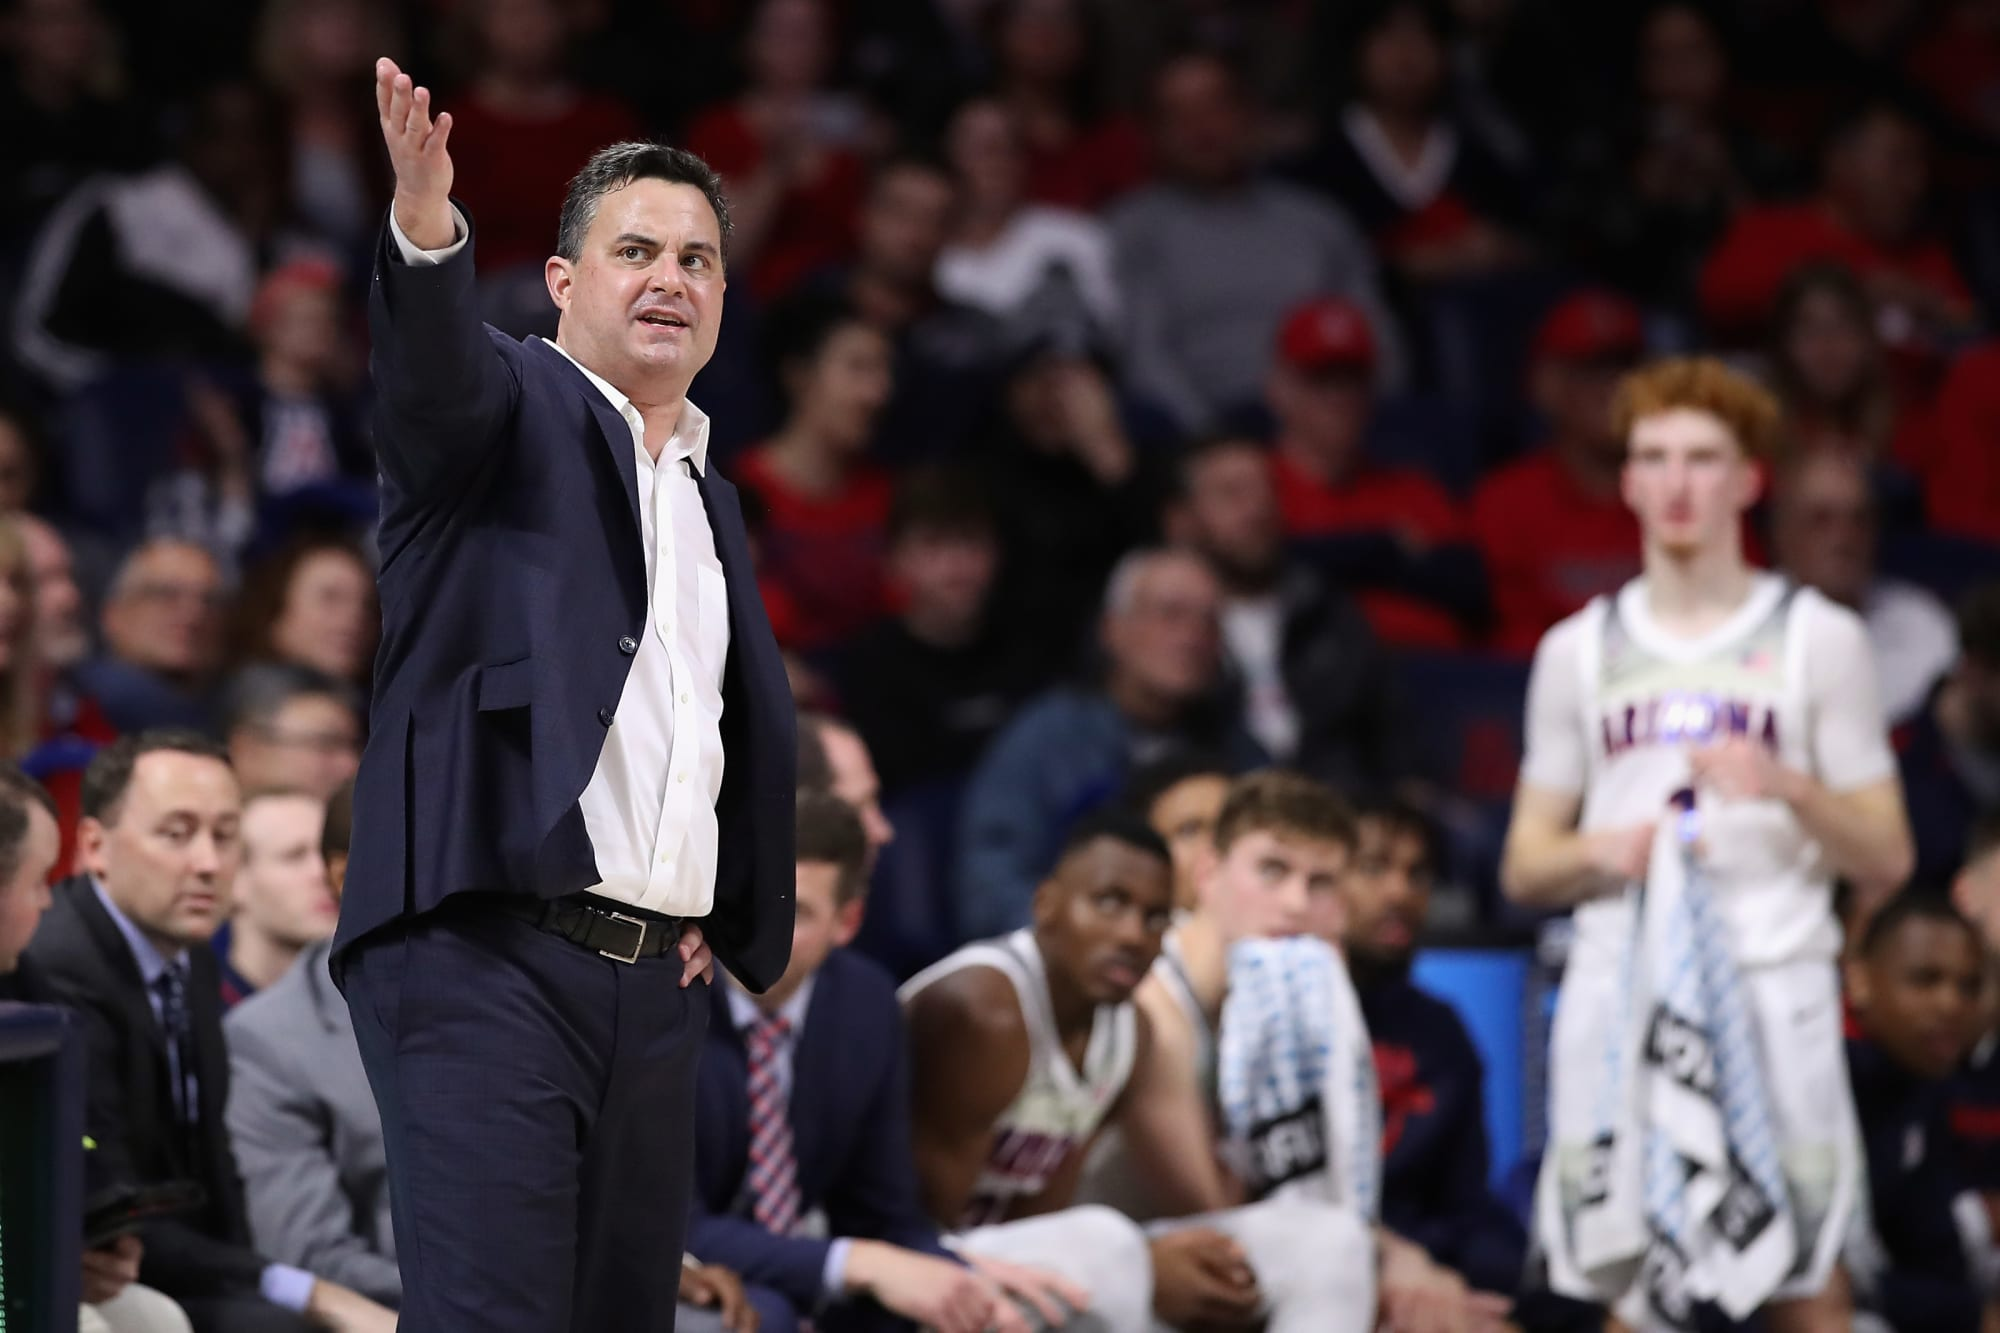 Arizona Basketball to bring the fight to the NCAA